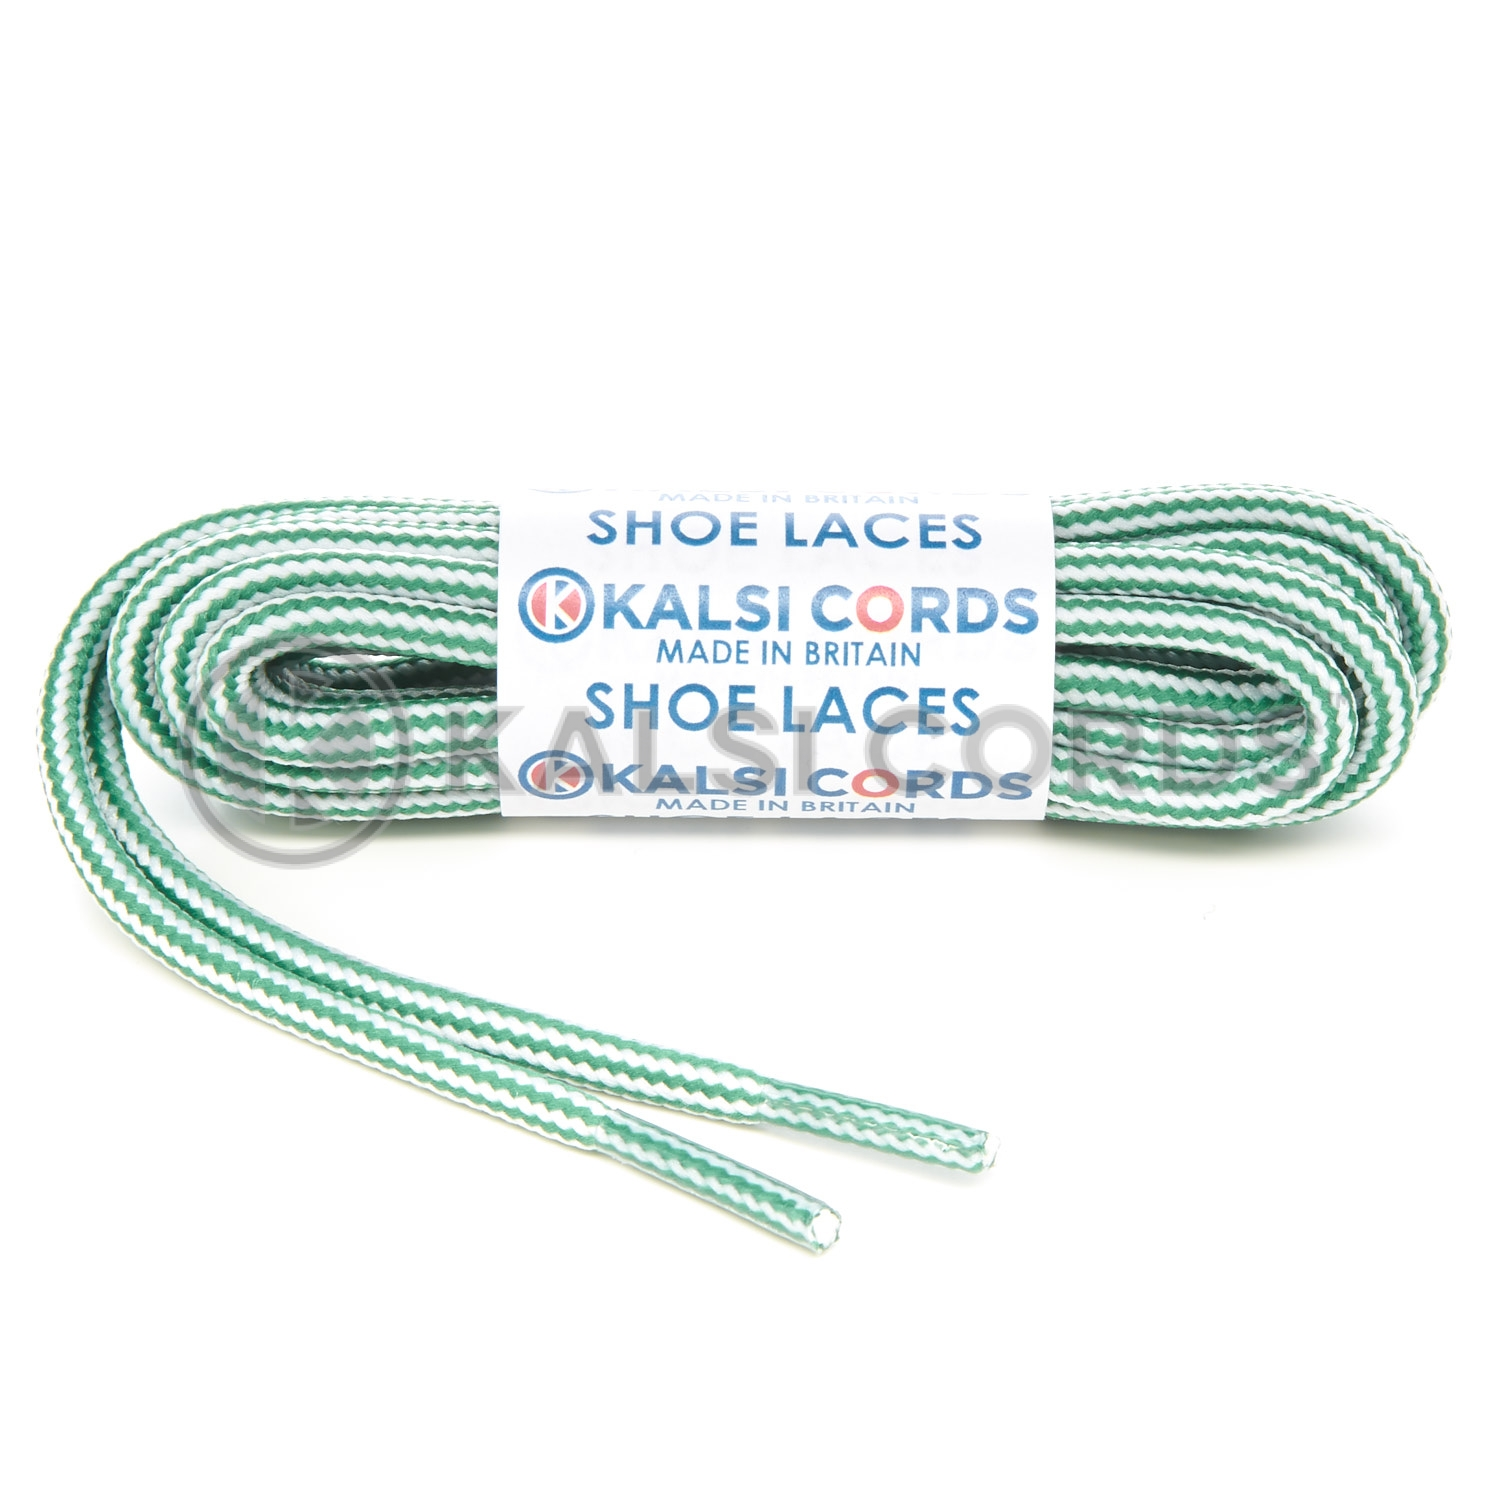 T621 5mm Round Cord Stripe Shoe Laces Emerald Green White Kids Trainers Adults Hiking Walking Boots Kalsi Cords